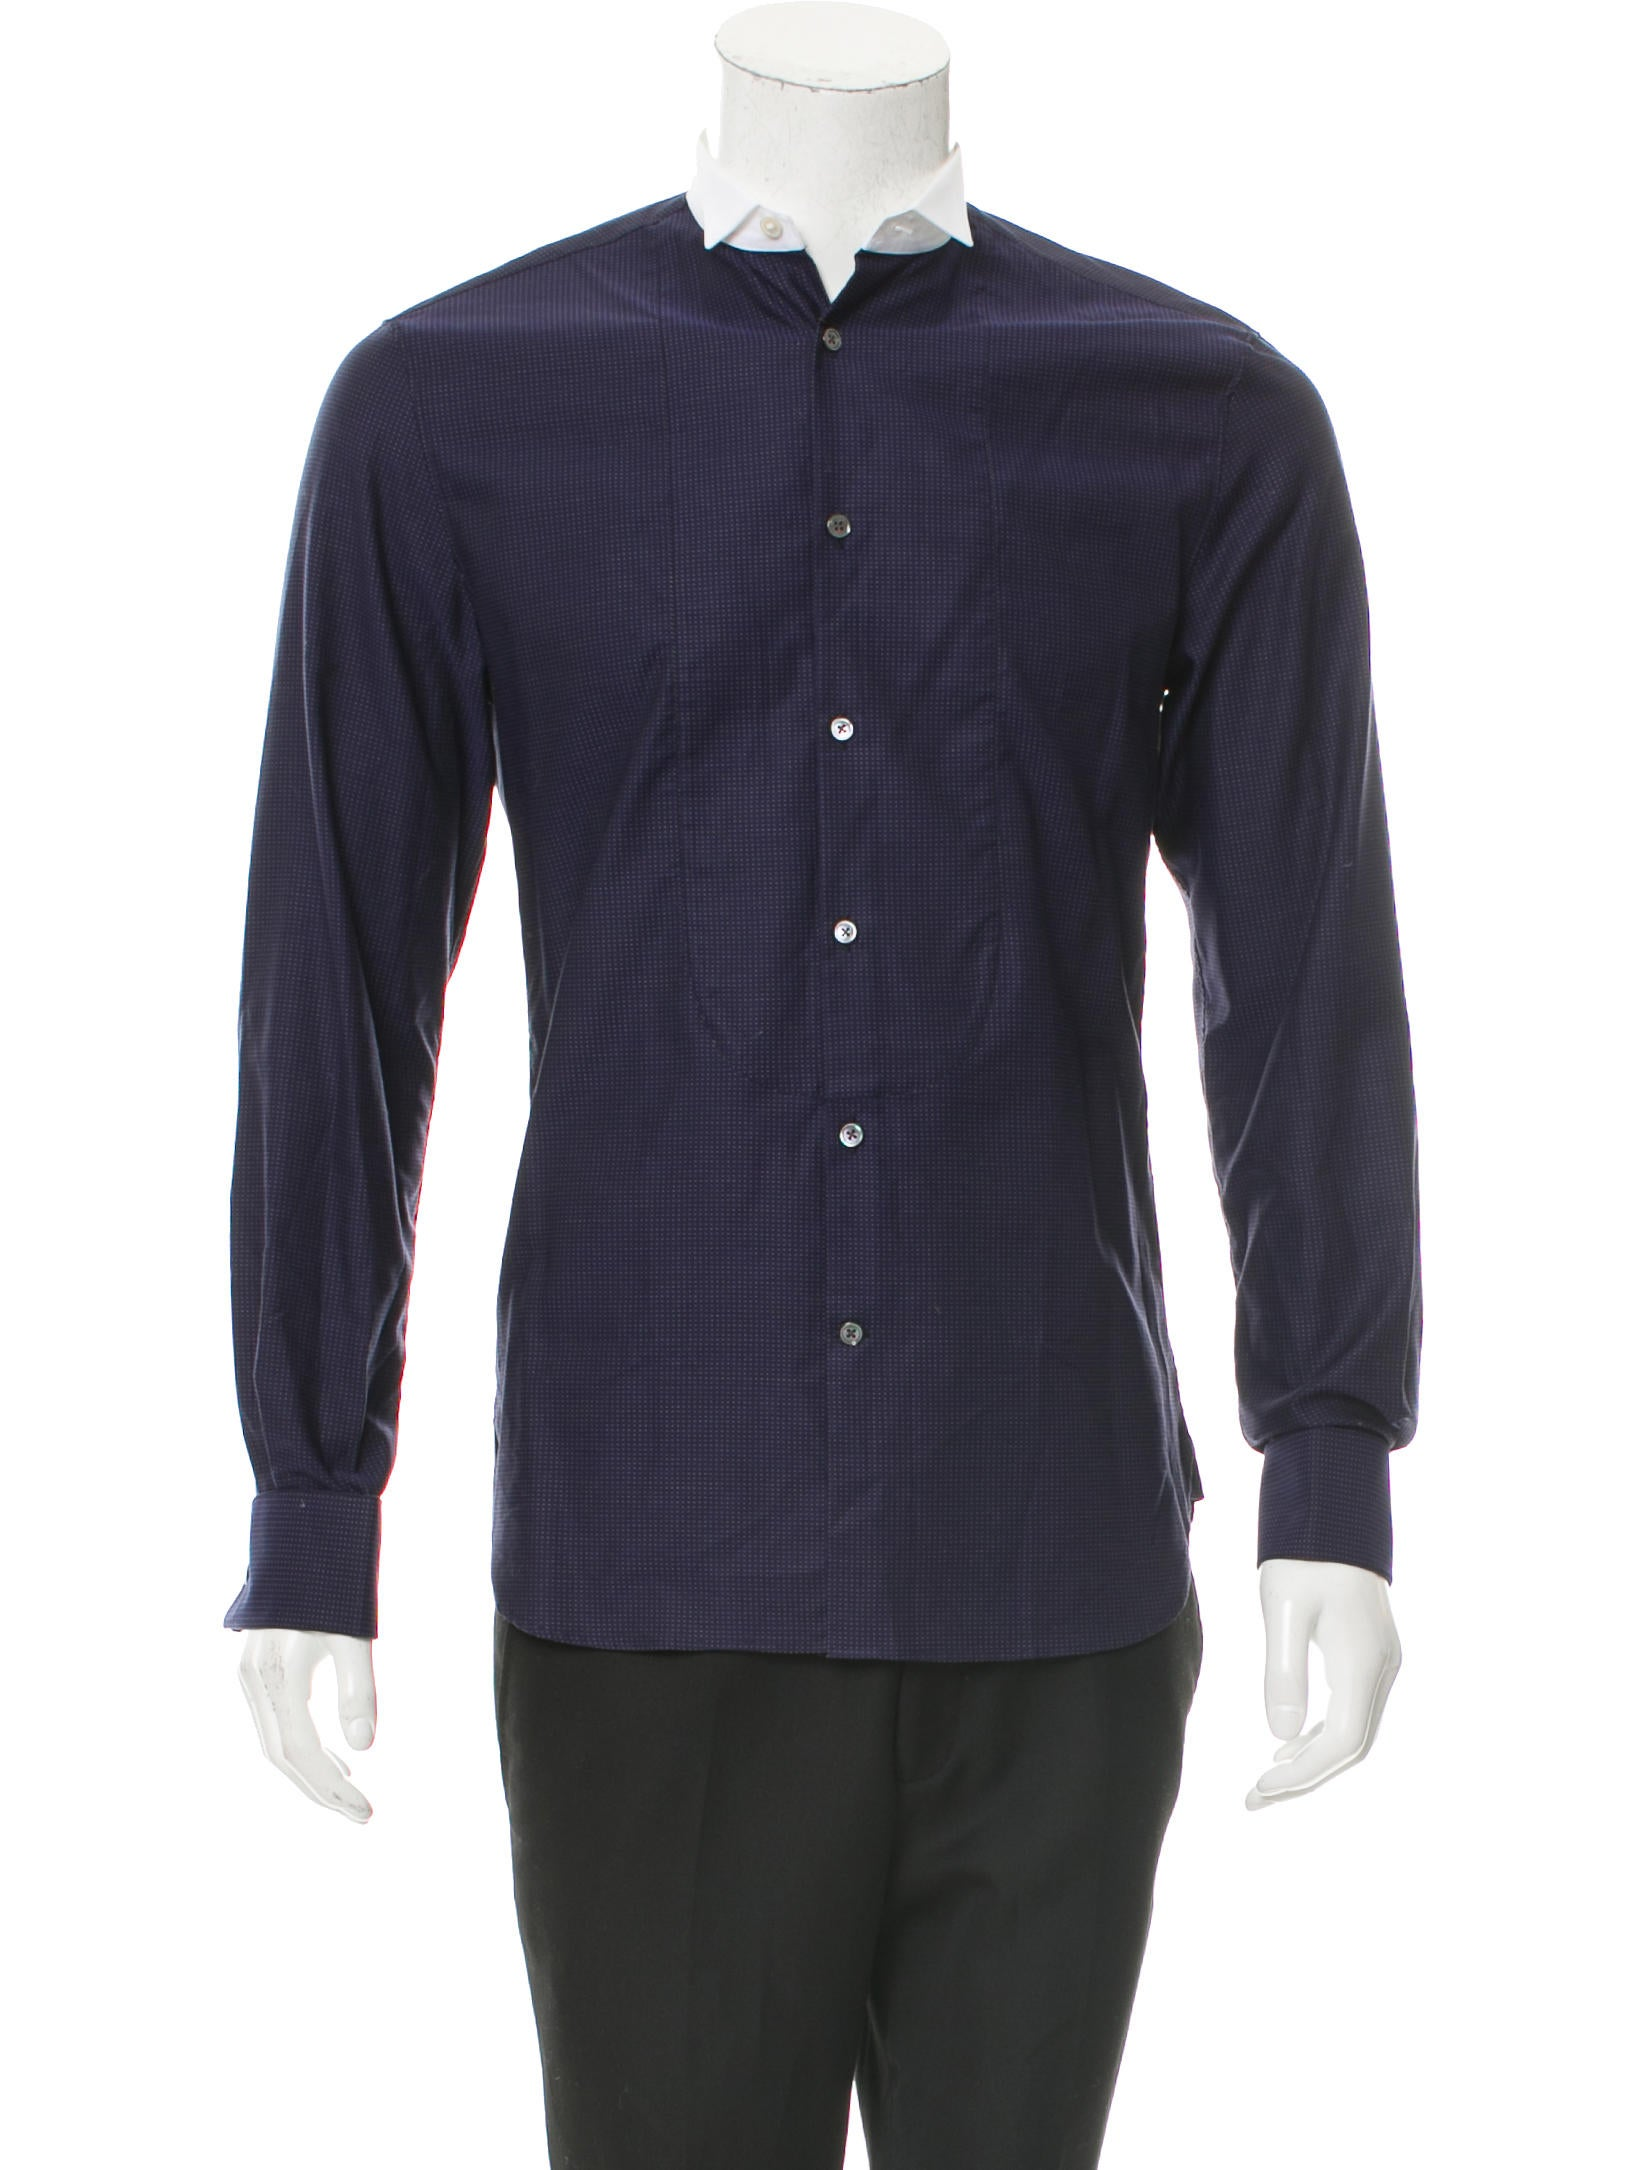 John varvatos french cuff button up shirt w tags for Pin collar shirt double cuff